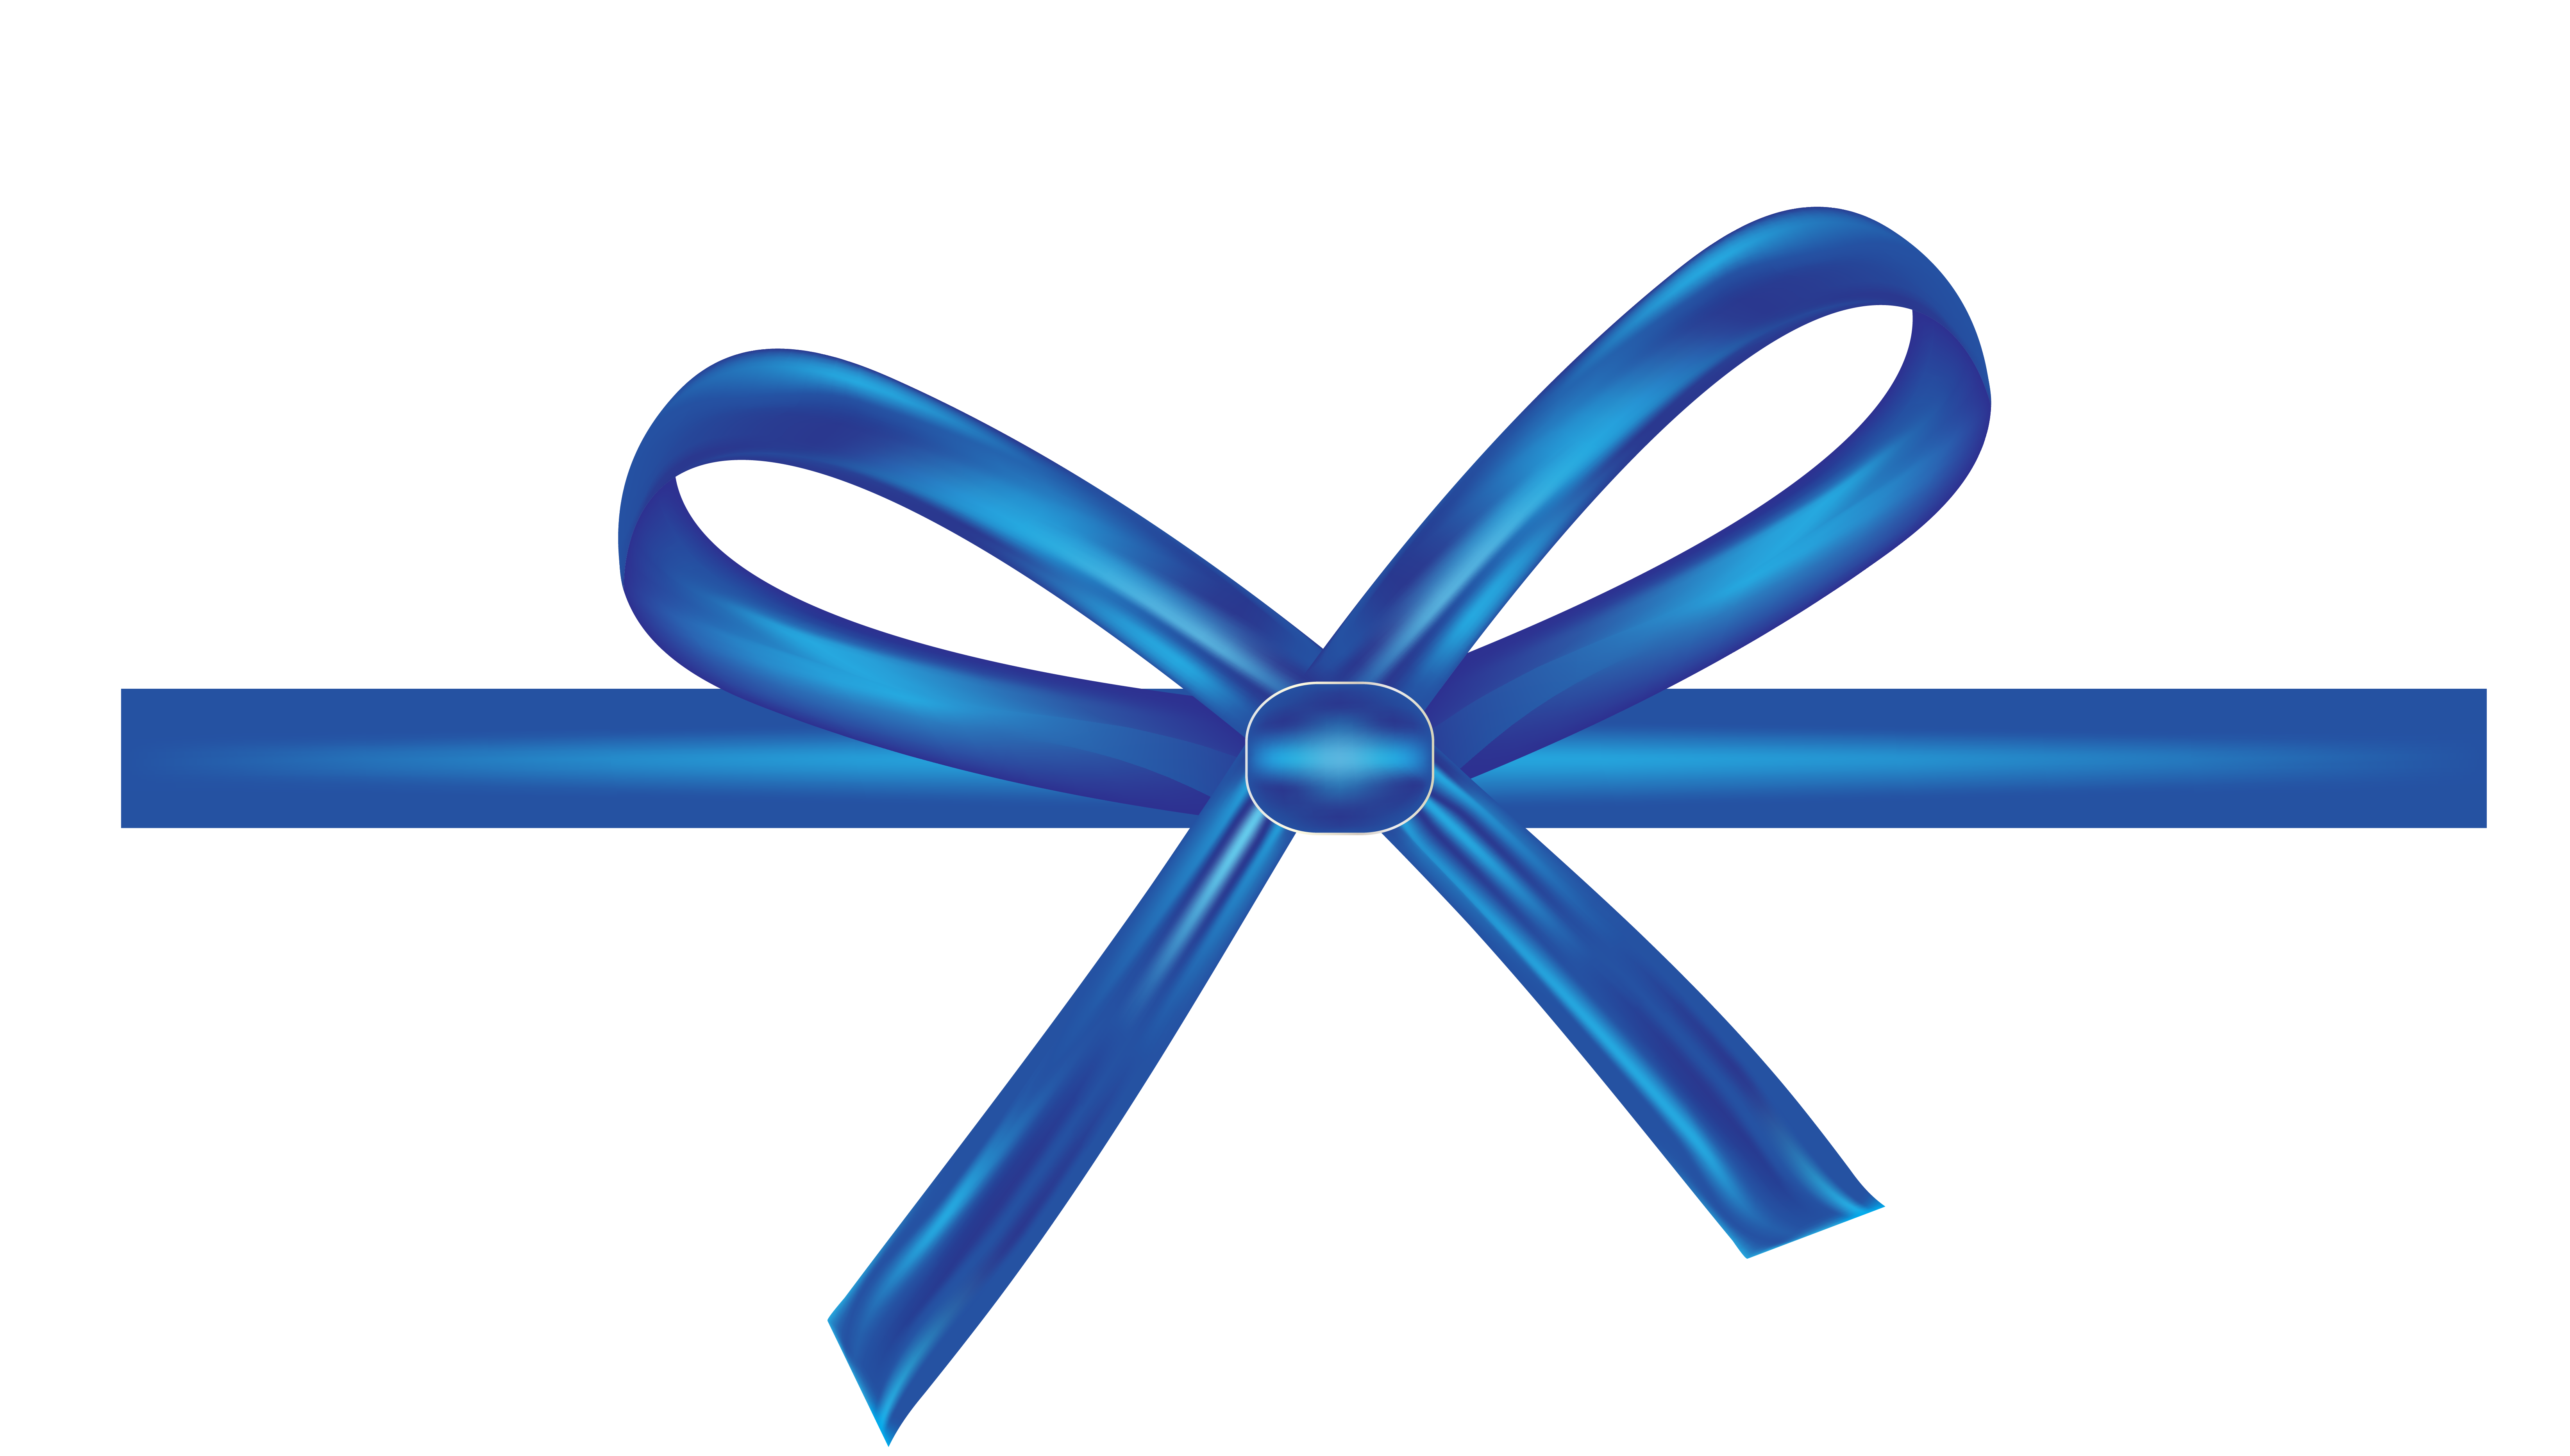 6578x3727 Shoelace Knot Blue Ribbon Bow Tie